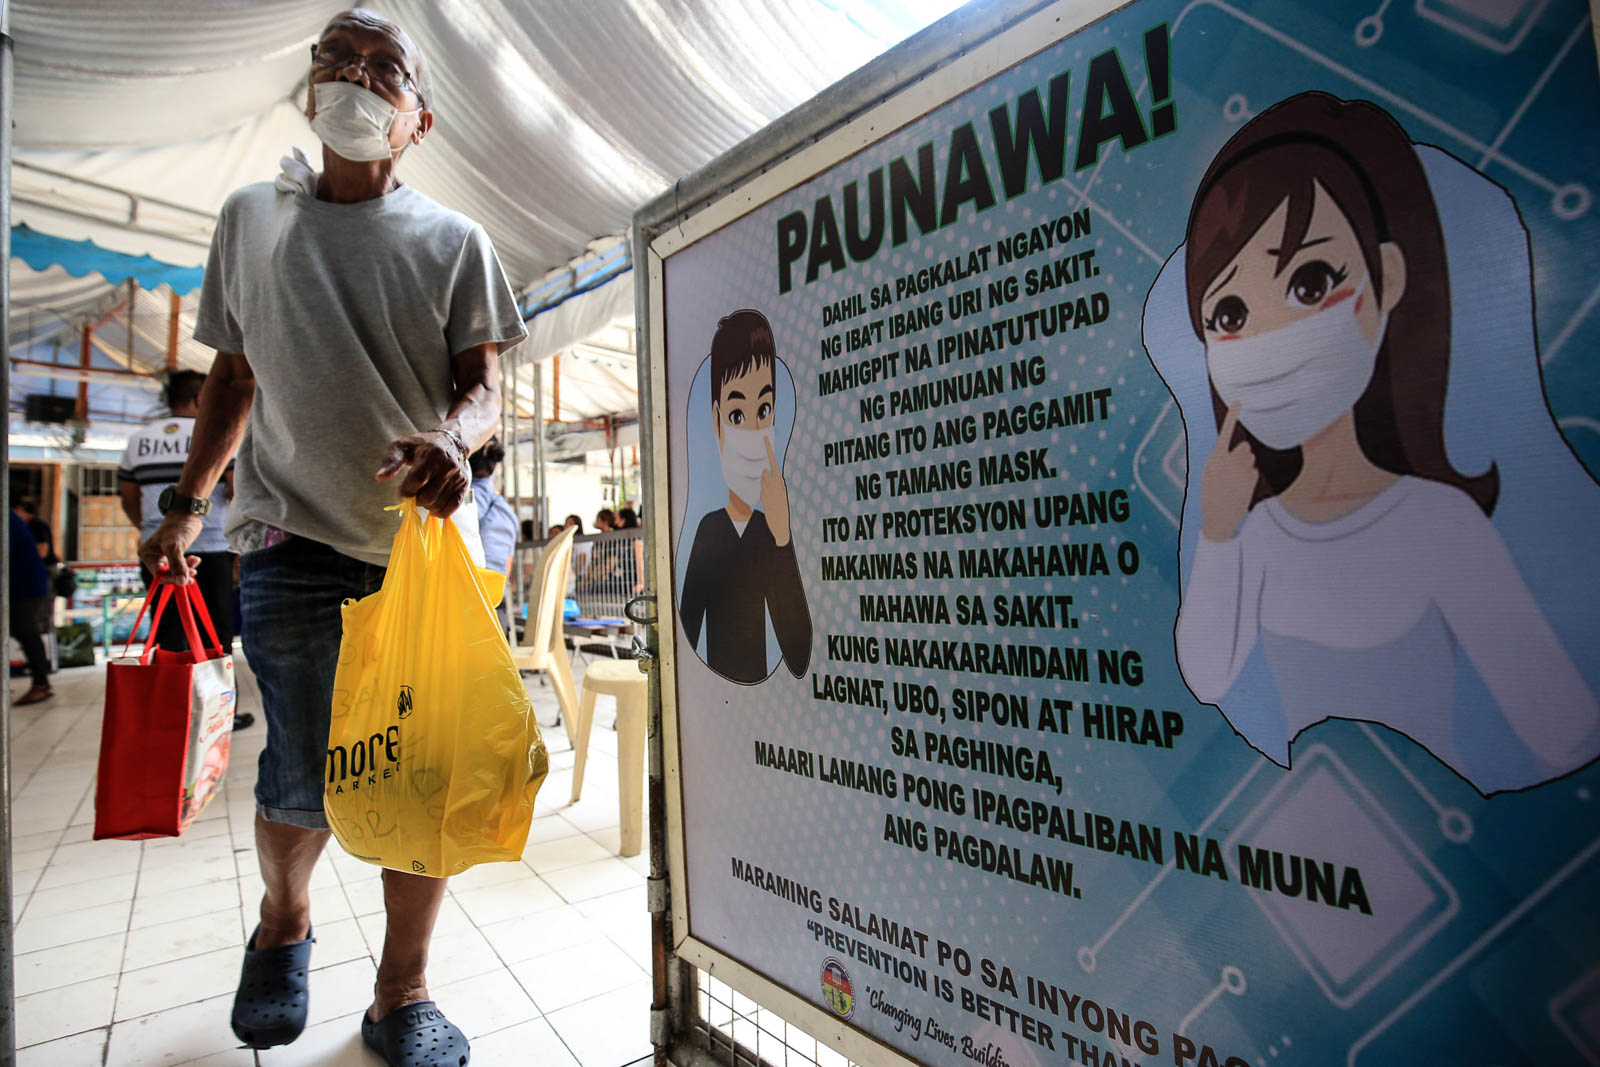 CLEAR SIGNS. The BJMP implements a 'no mask, no entry' policy for visitors of inmates at the Manila City Jail on March 10, 2020, as part of their initiative to curb the spread of the Coronavirus disease. Photo by Ben Nabong/Rappler